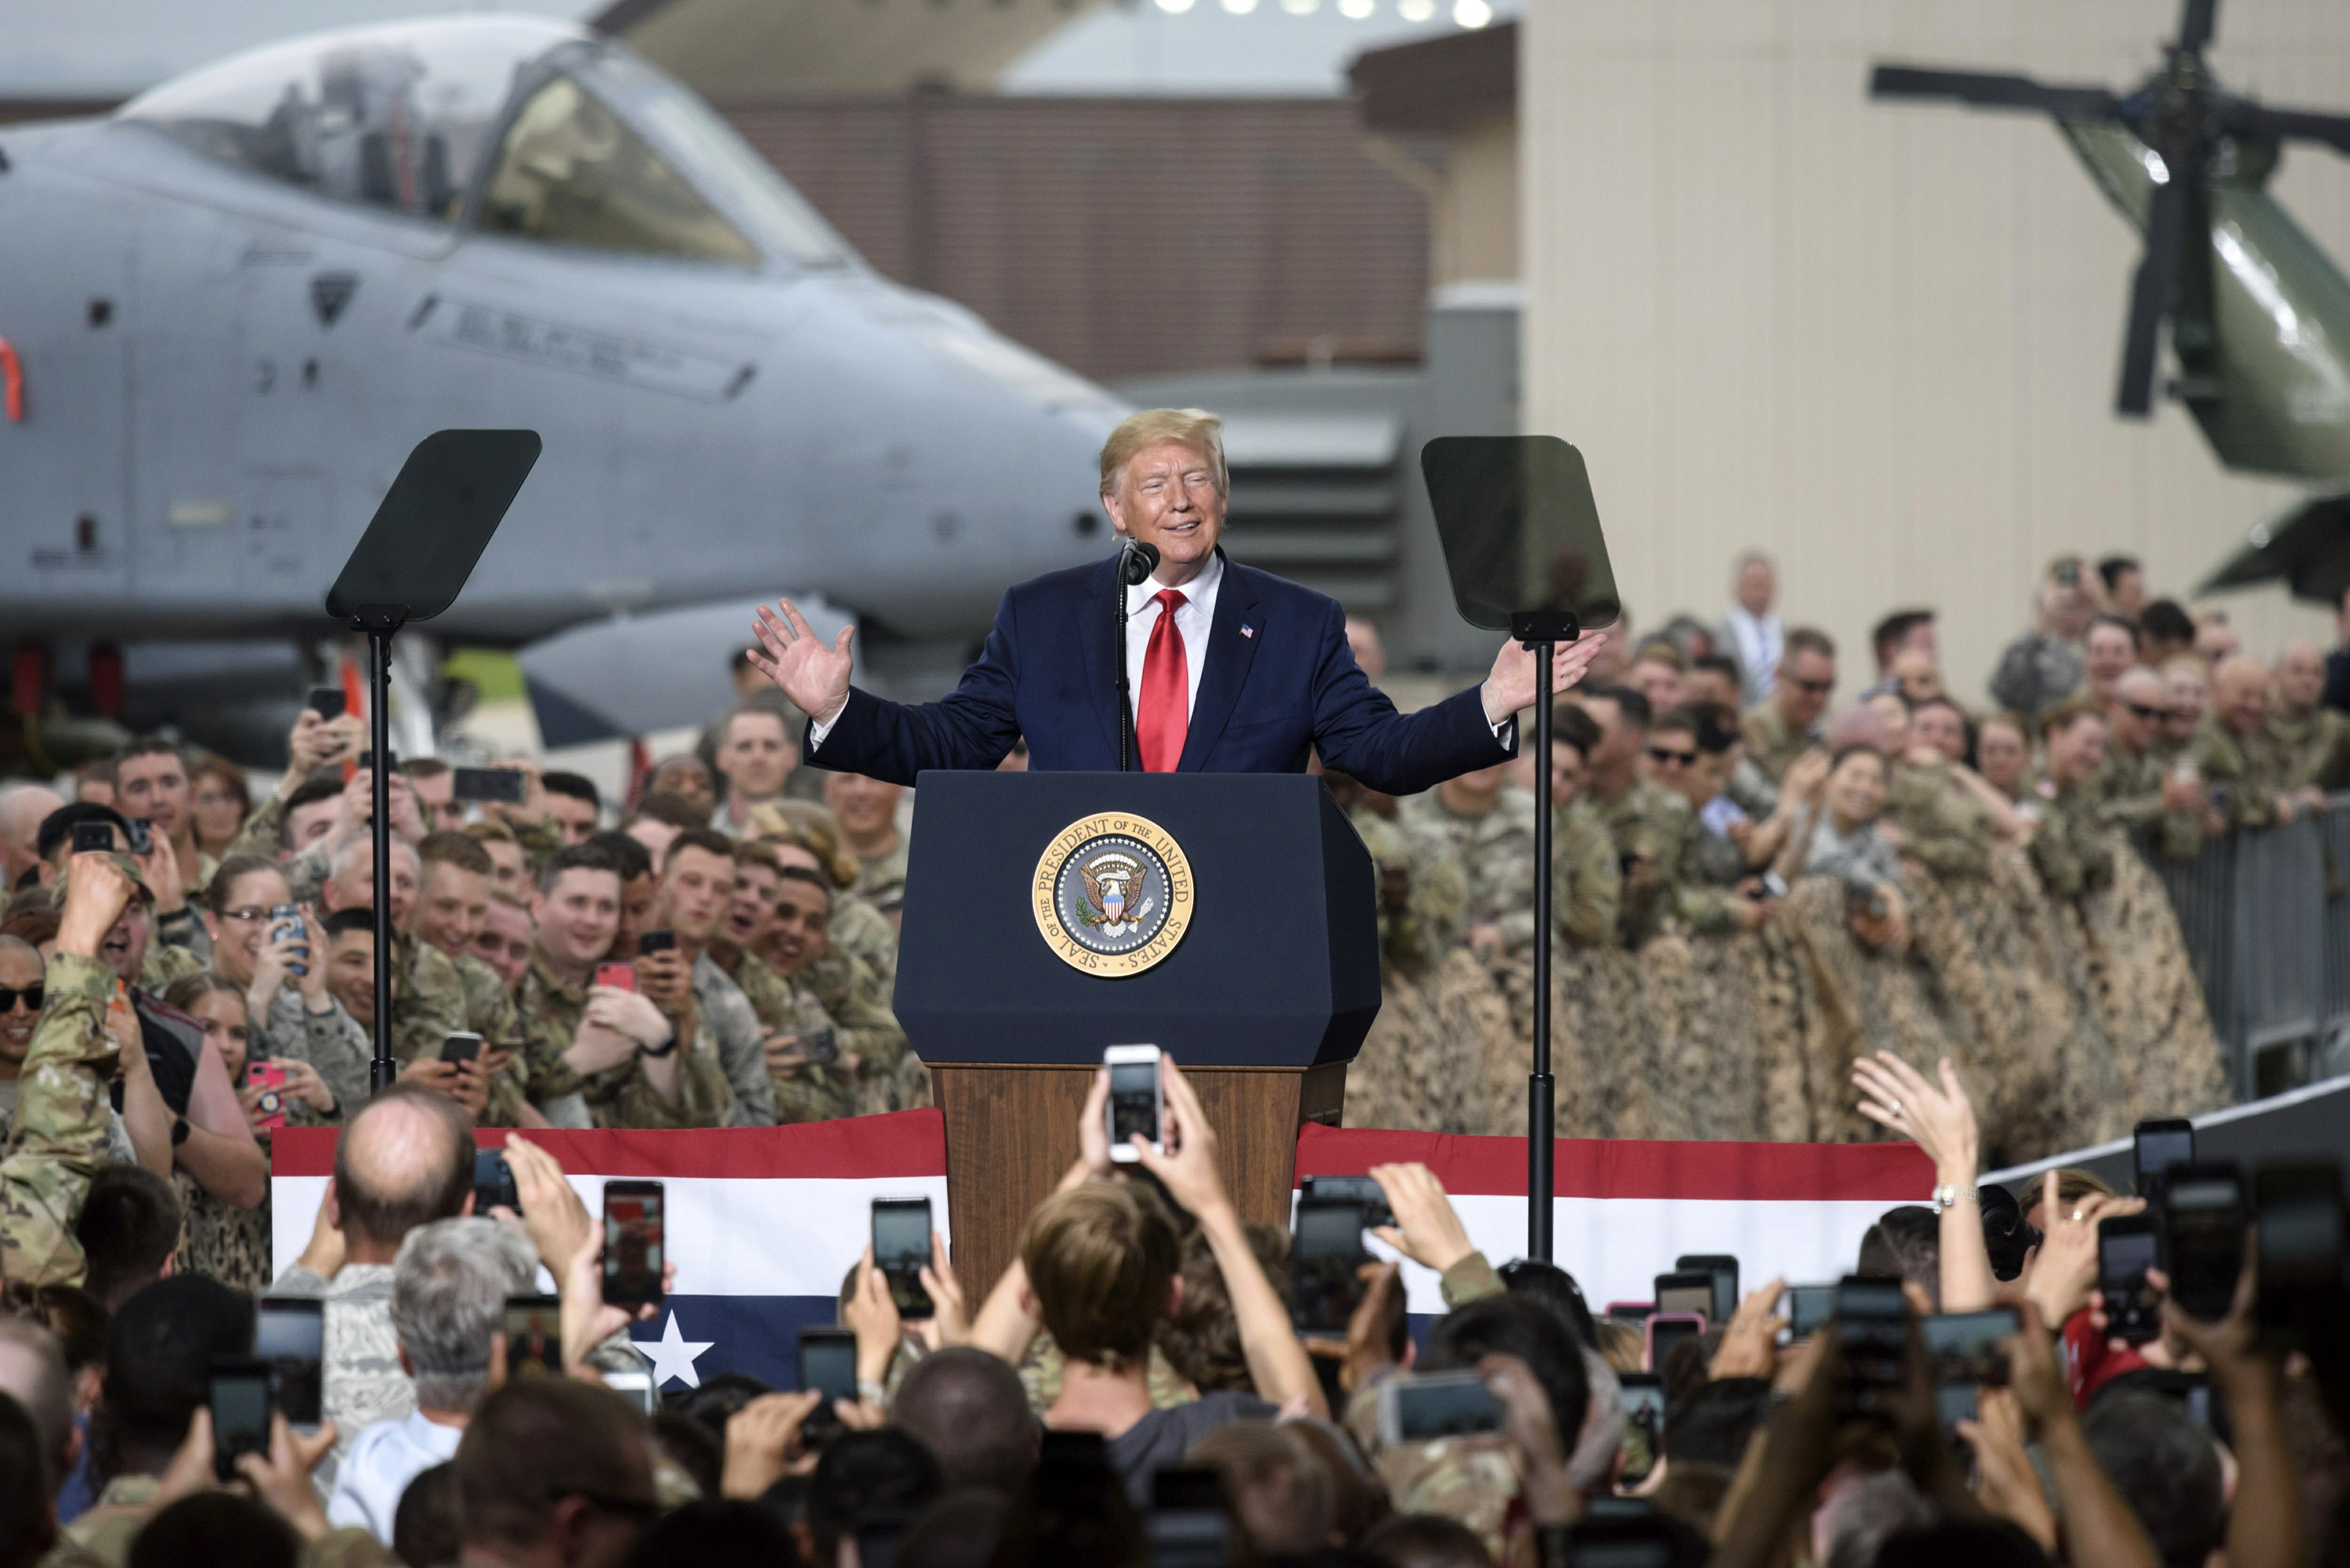 AP FACT CHECK: Trump often is wrong about military matters